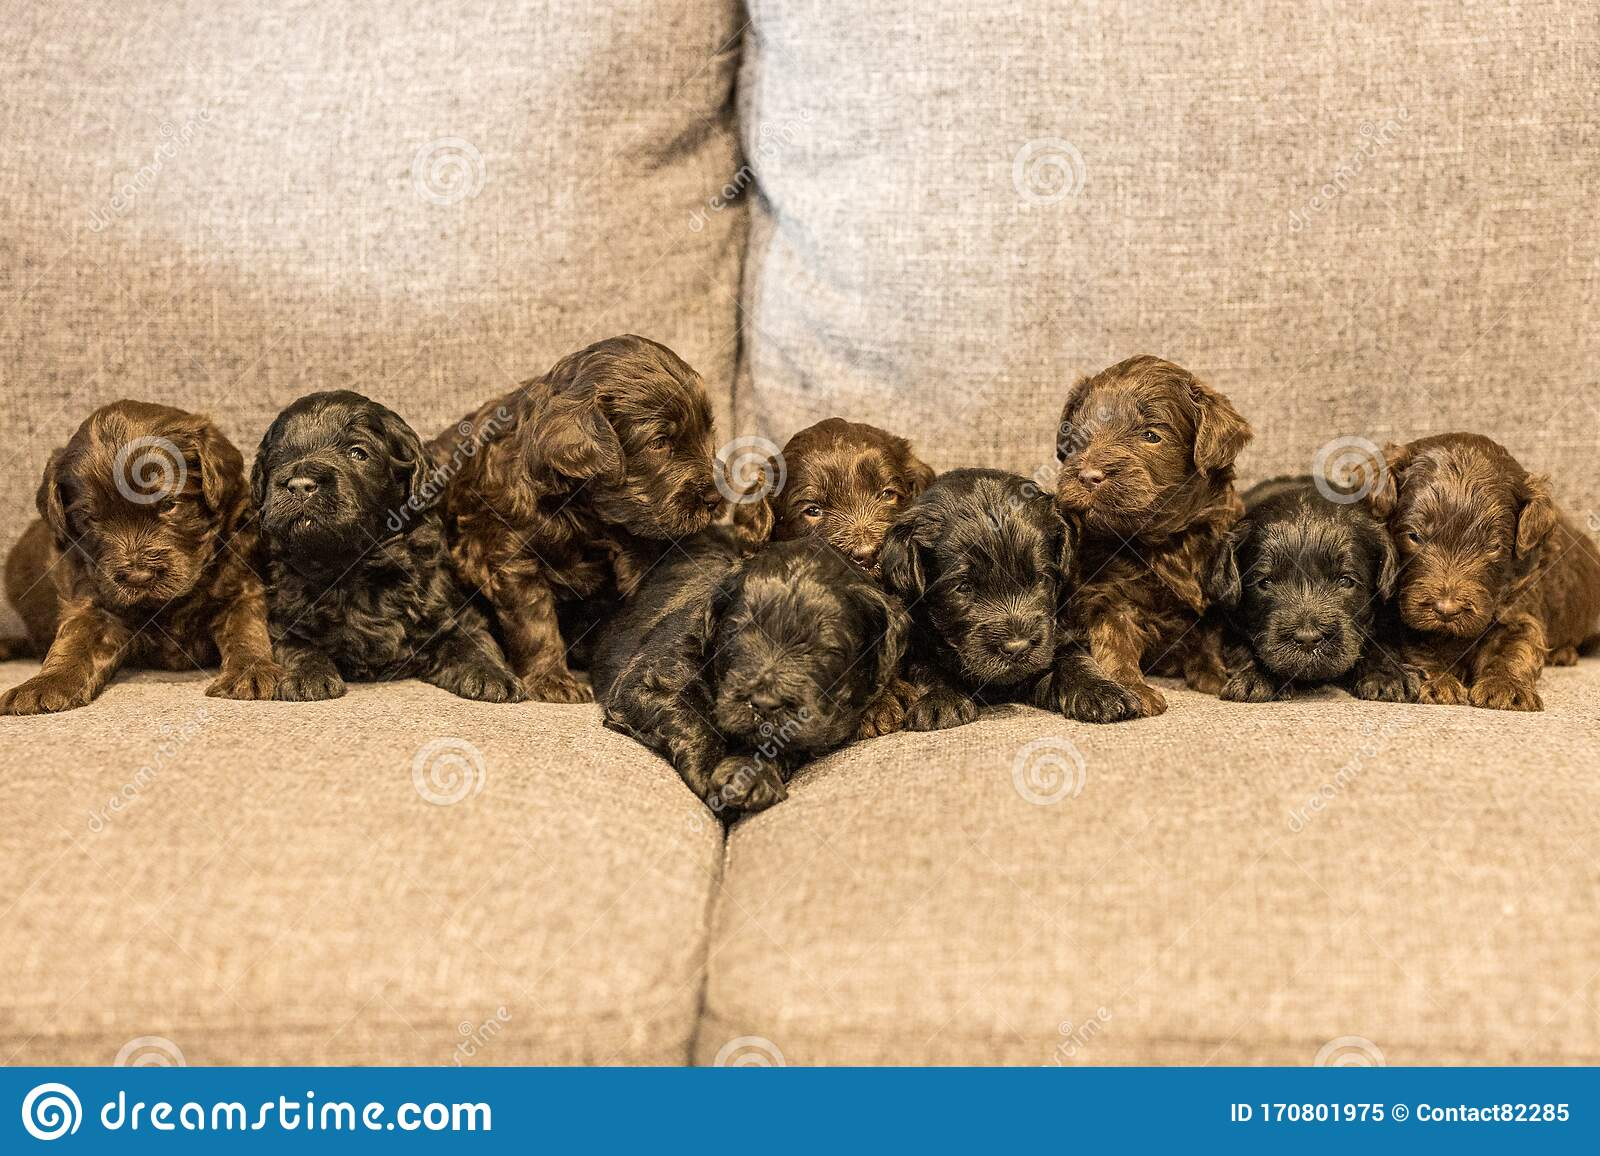 Nine Brand New Little Groodle Puppies Sometimes Called Godlendoodles Stock Image Image Of Doggy Australia 170801975